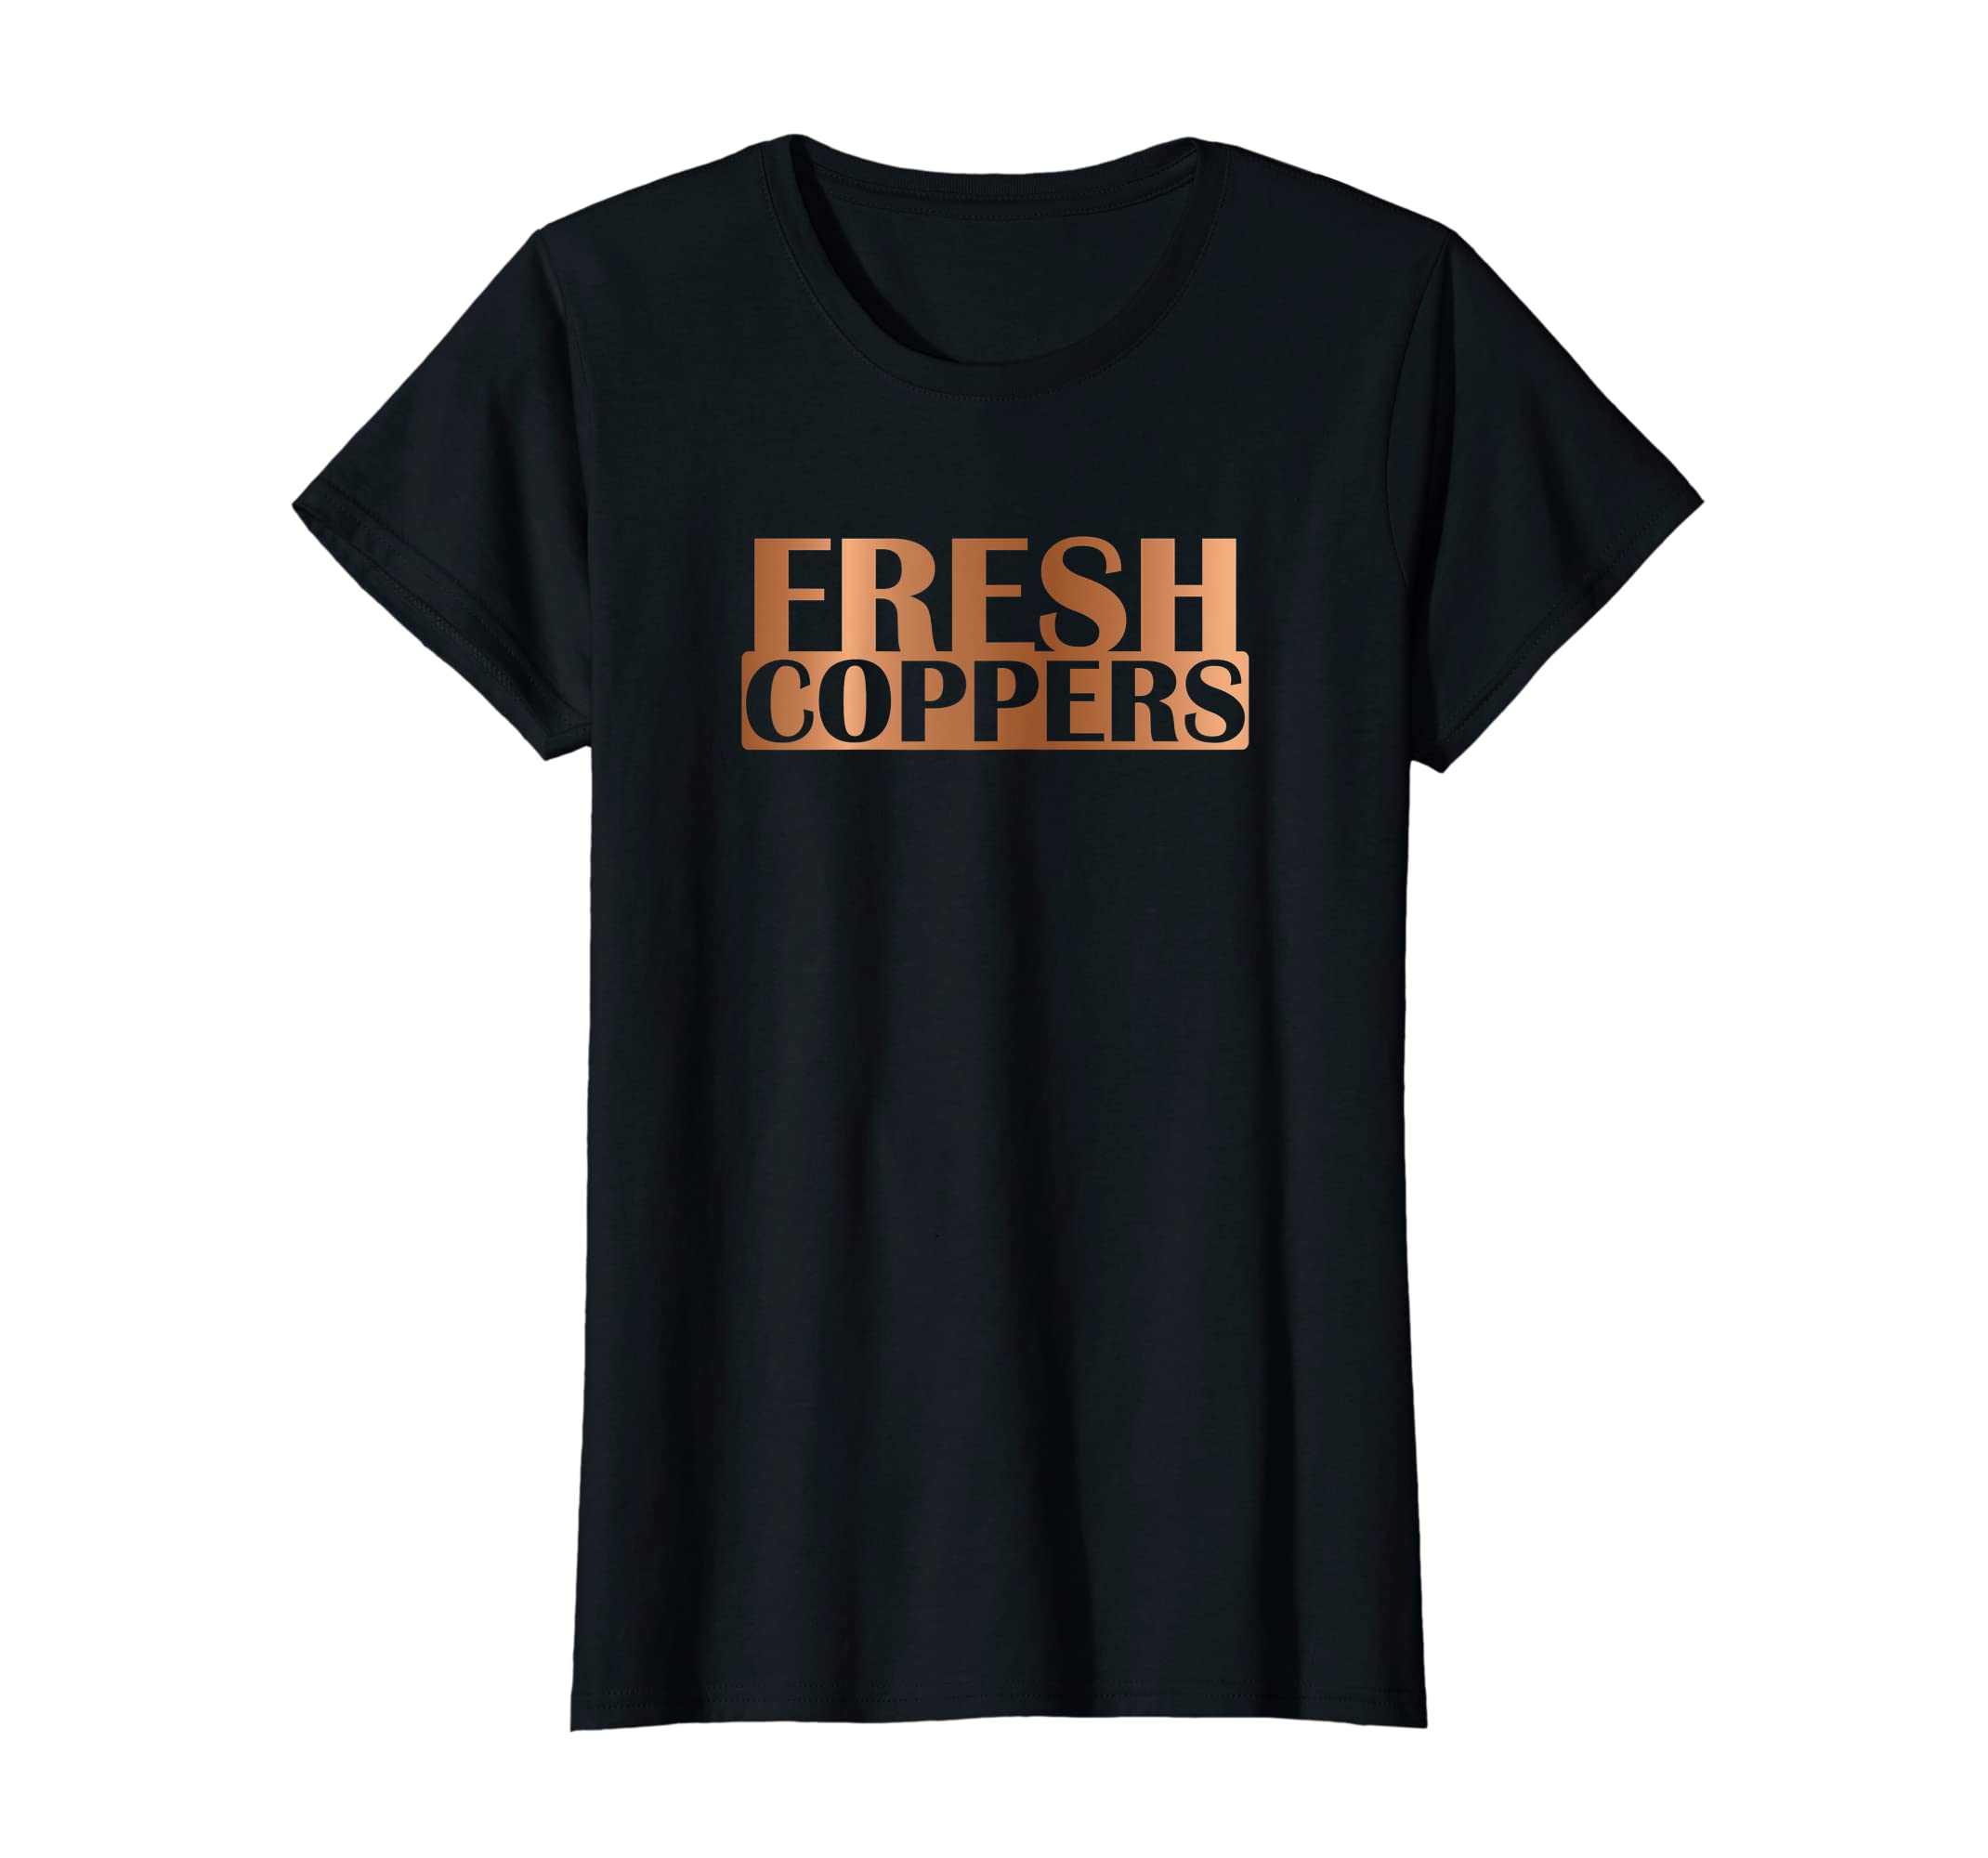 061a9f29b1fdf Amazon.com  Fresh Coppers Foams Sneaker T-Shirt Foamposite Match  Clothing